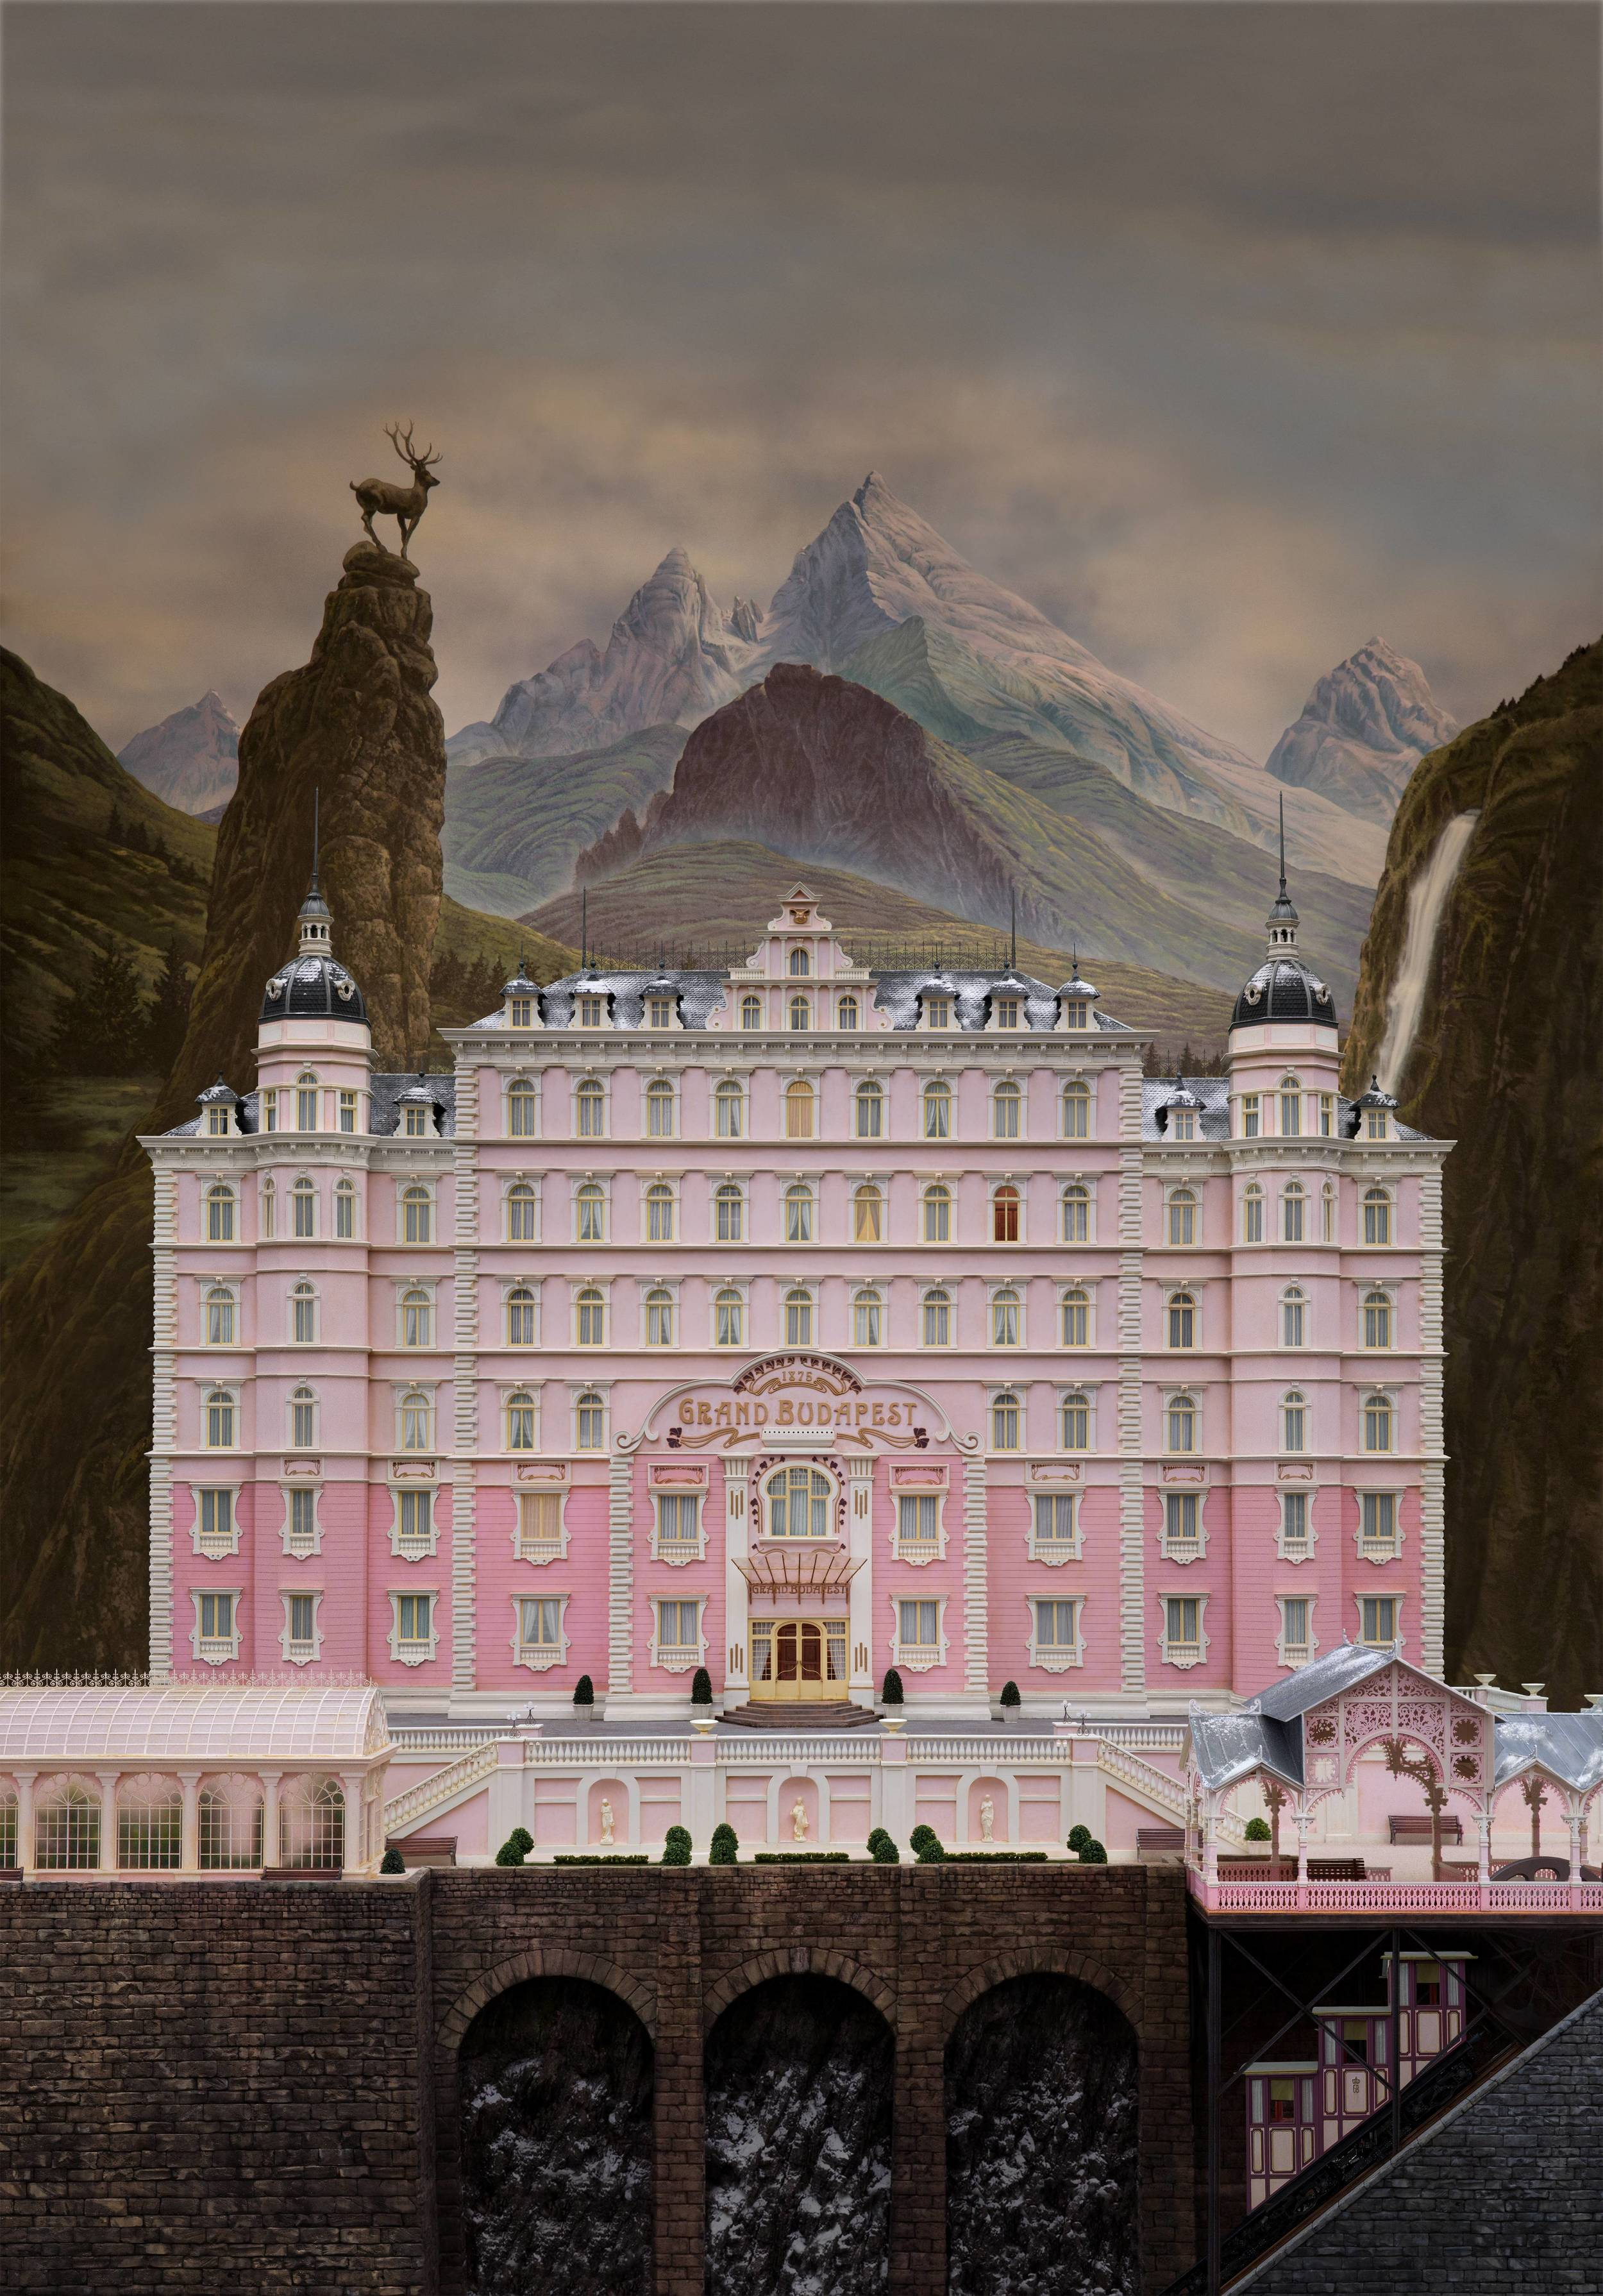 Hotel Grand Budapest (2014)- Wes Anderson